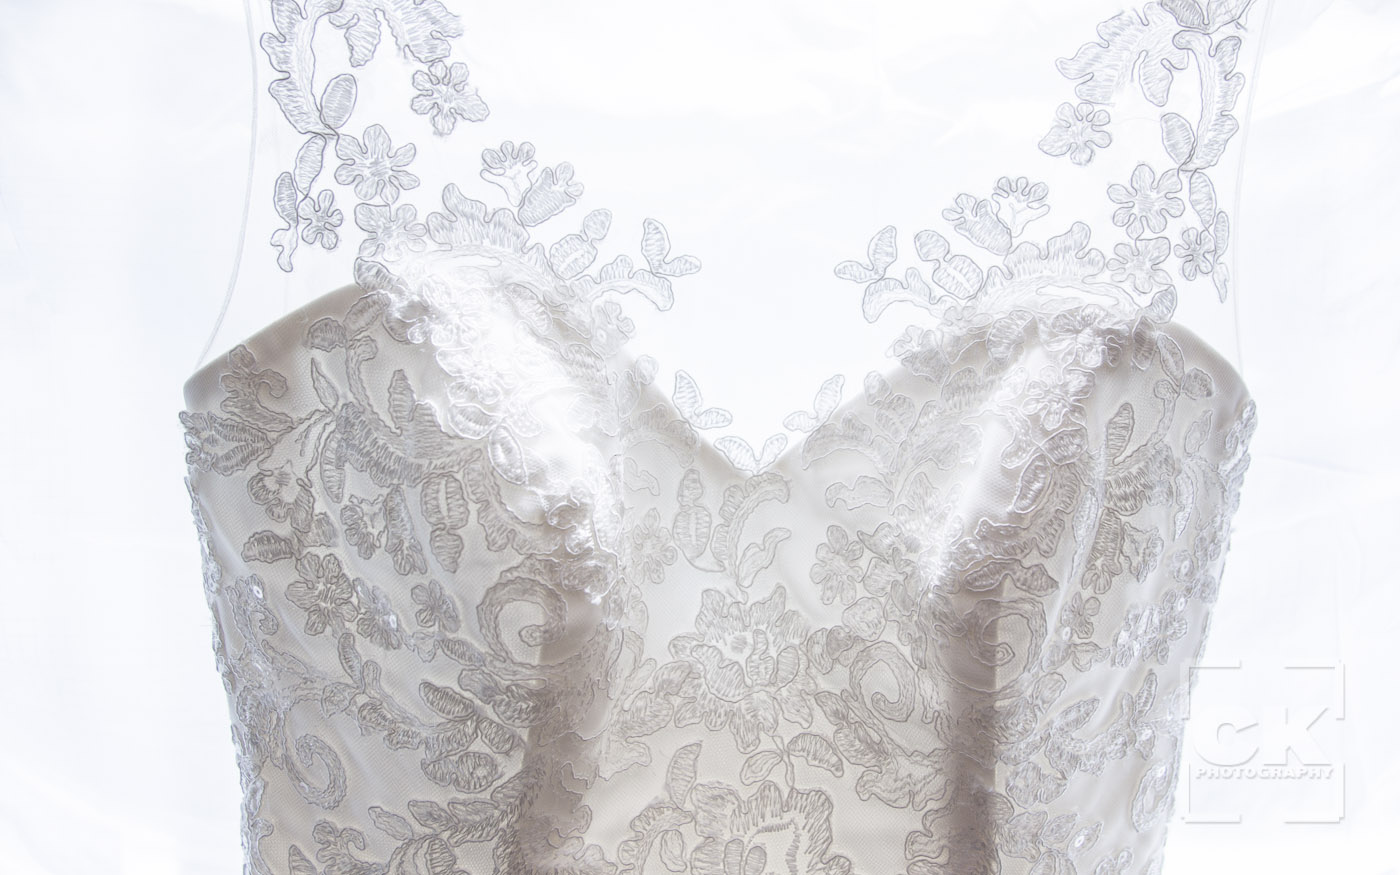 Chris Kryzanek Photography - Wedding Dress detail